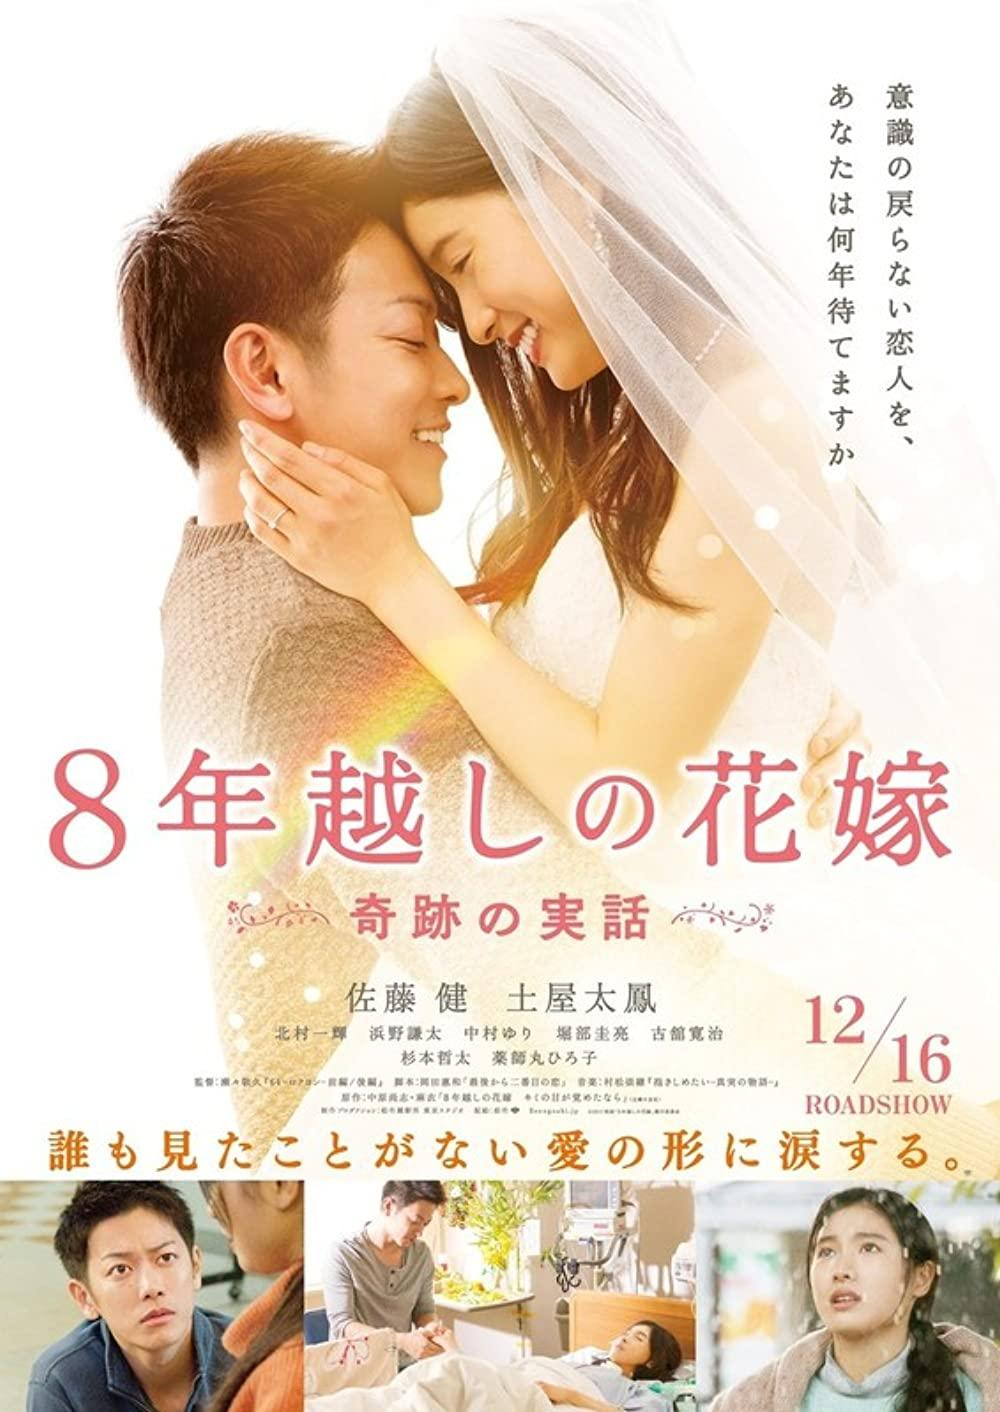 3. The 8-Year Engagement